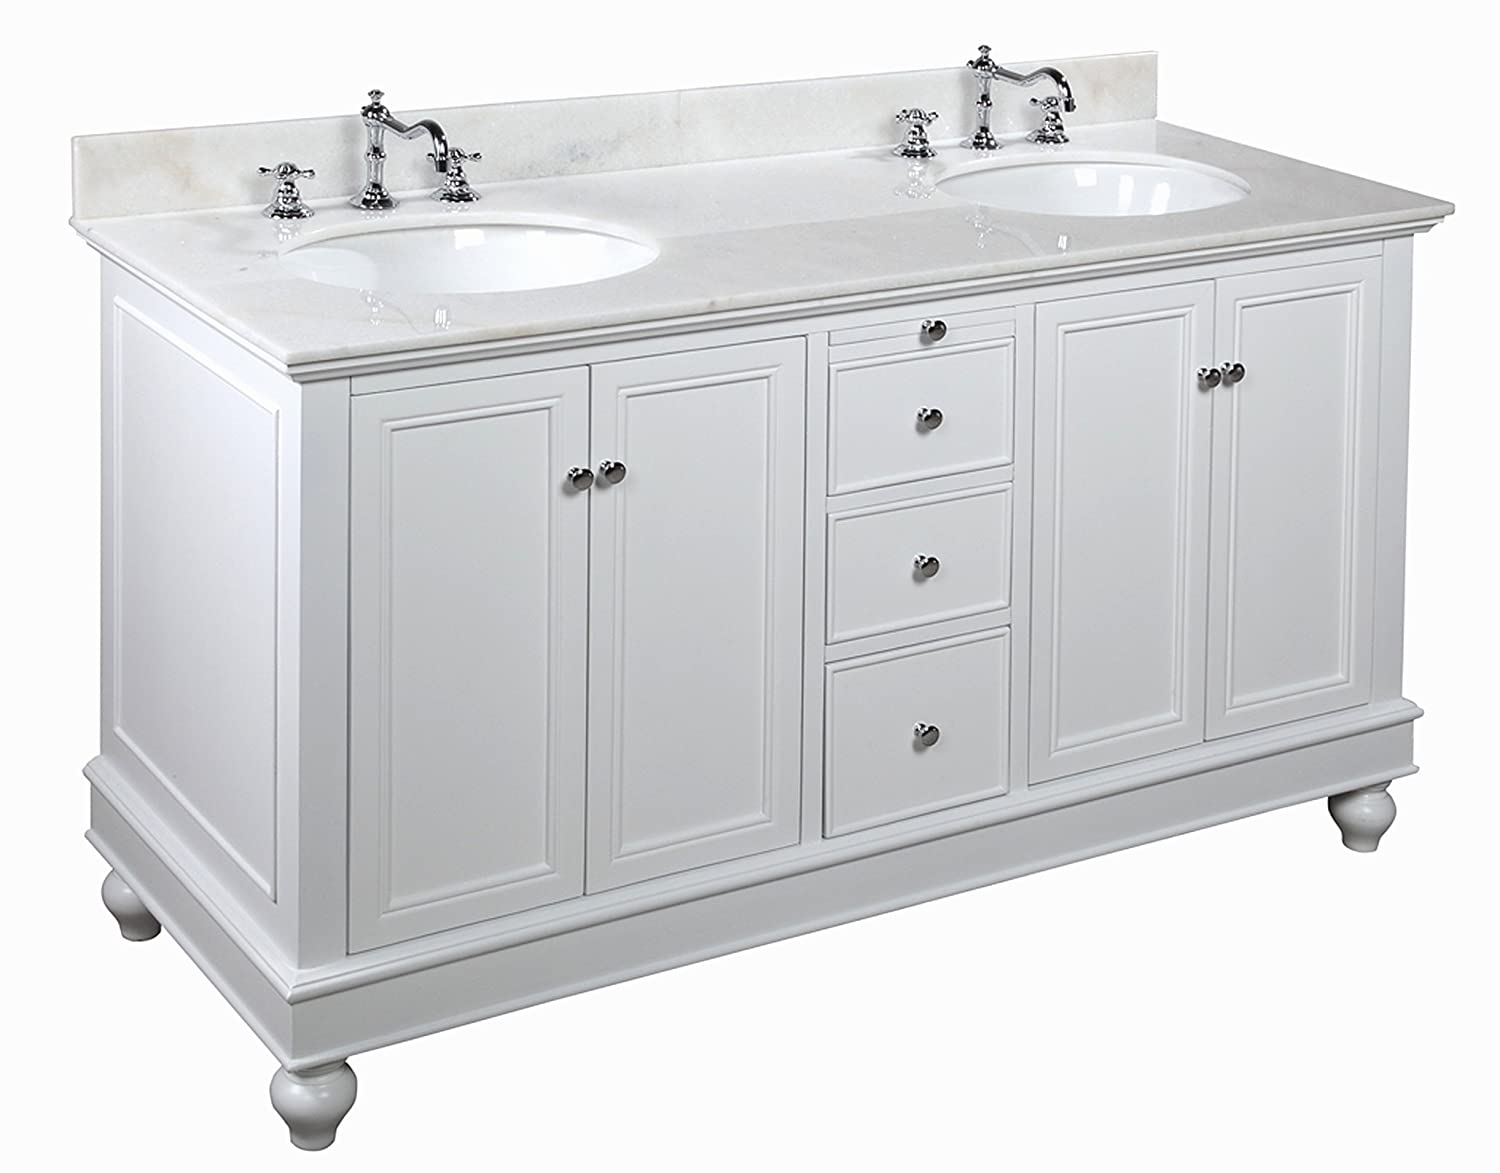 Low Cost Bathroom Vanities 28 Images Ideas For Low Cost Bathroom Updates 11 Low Cost Ways